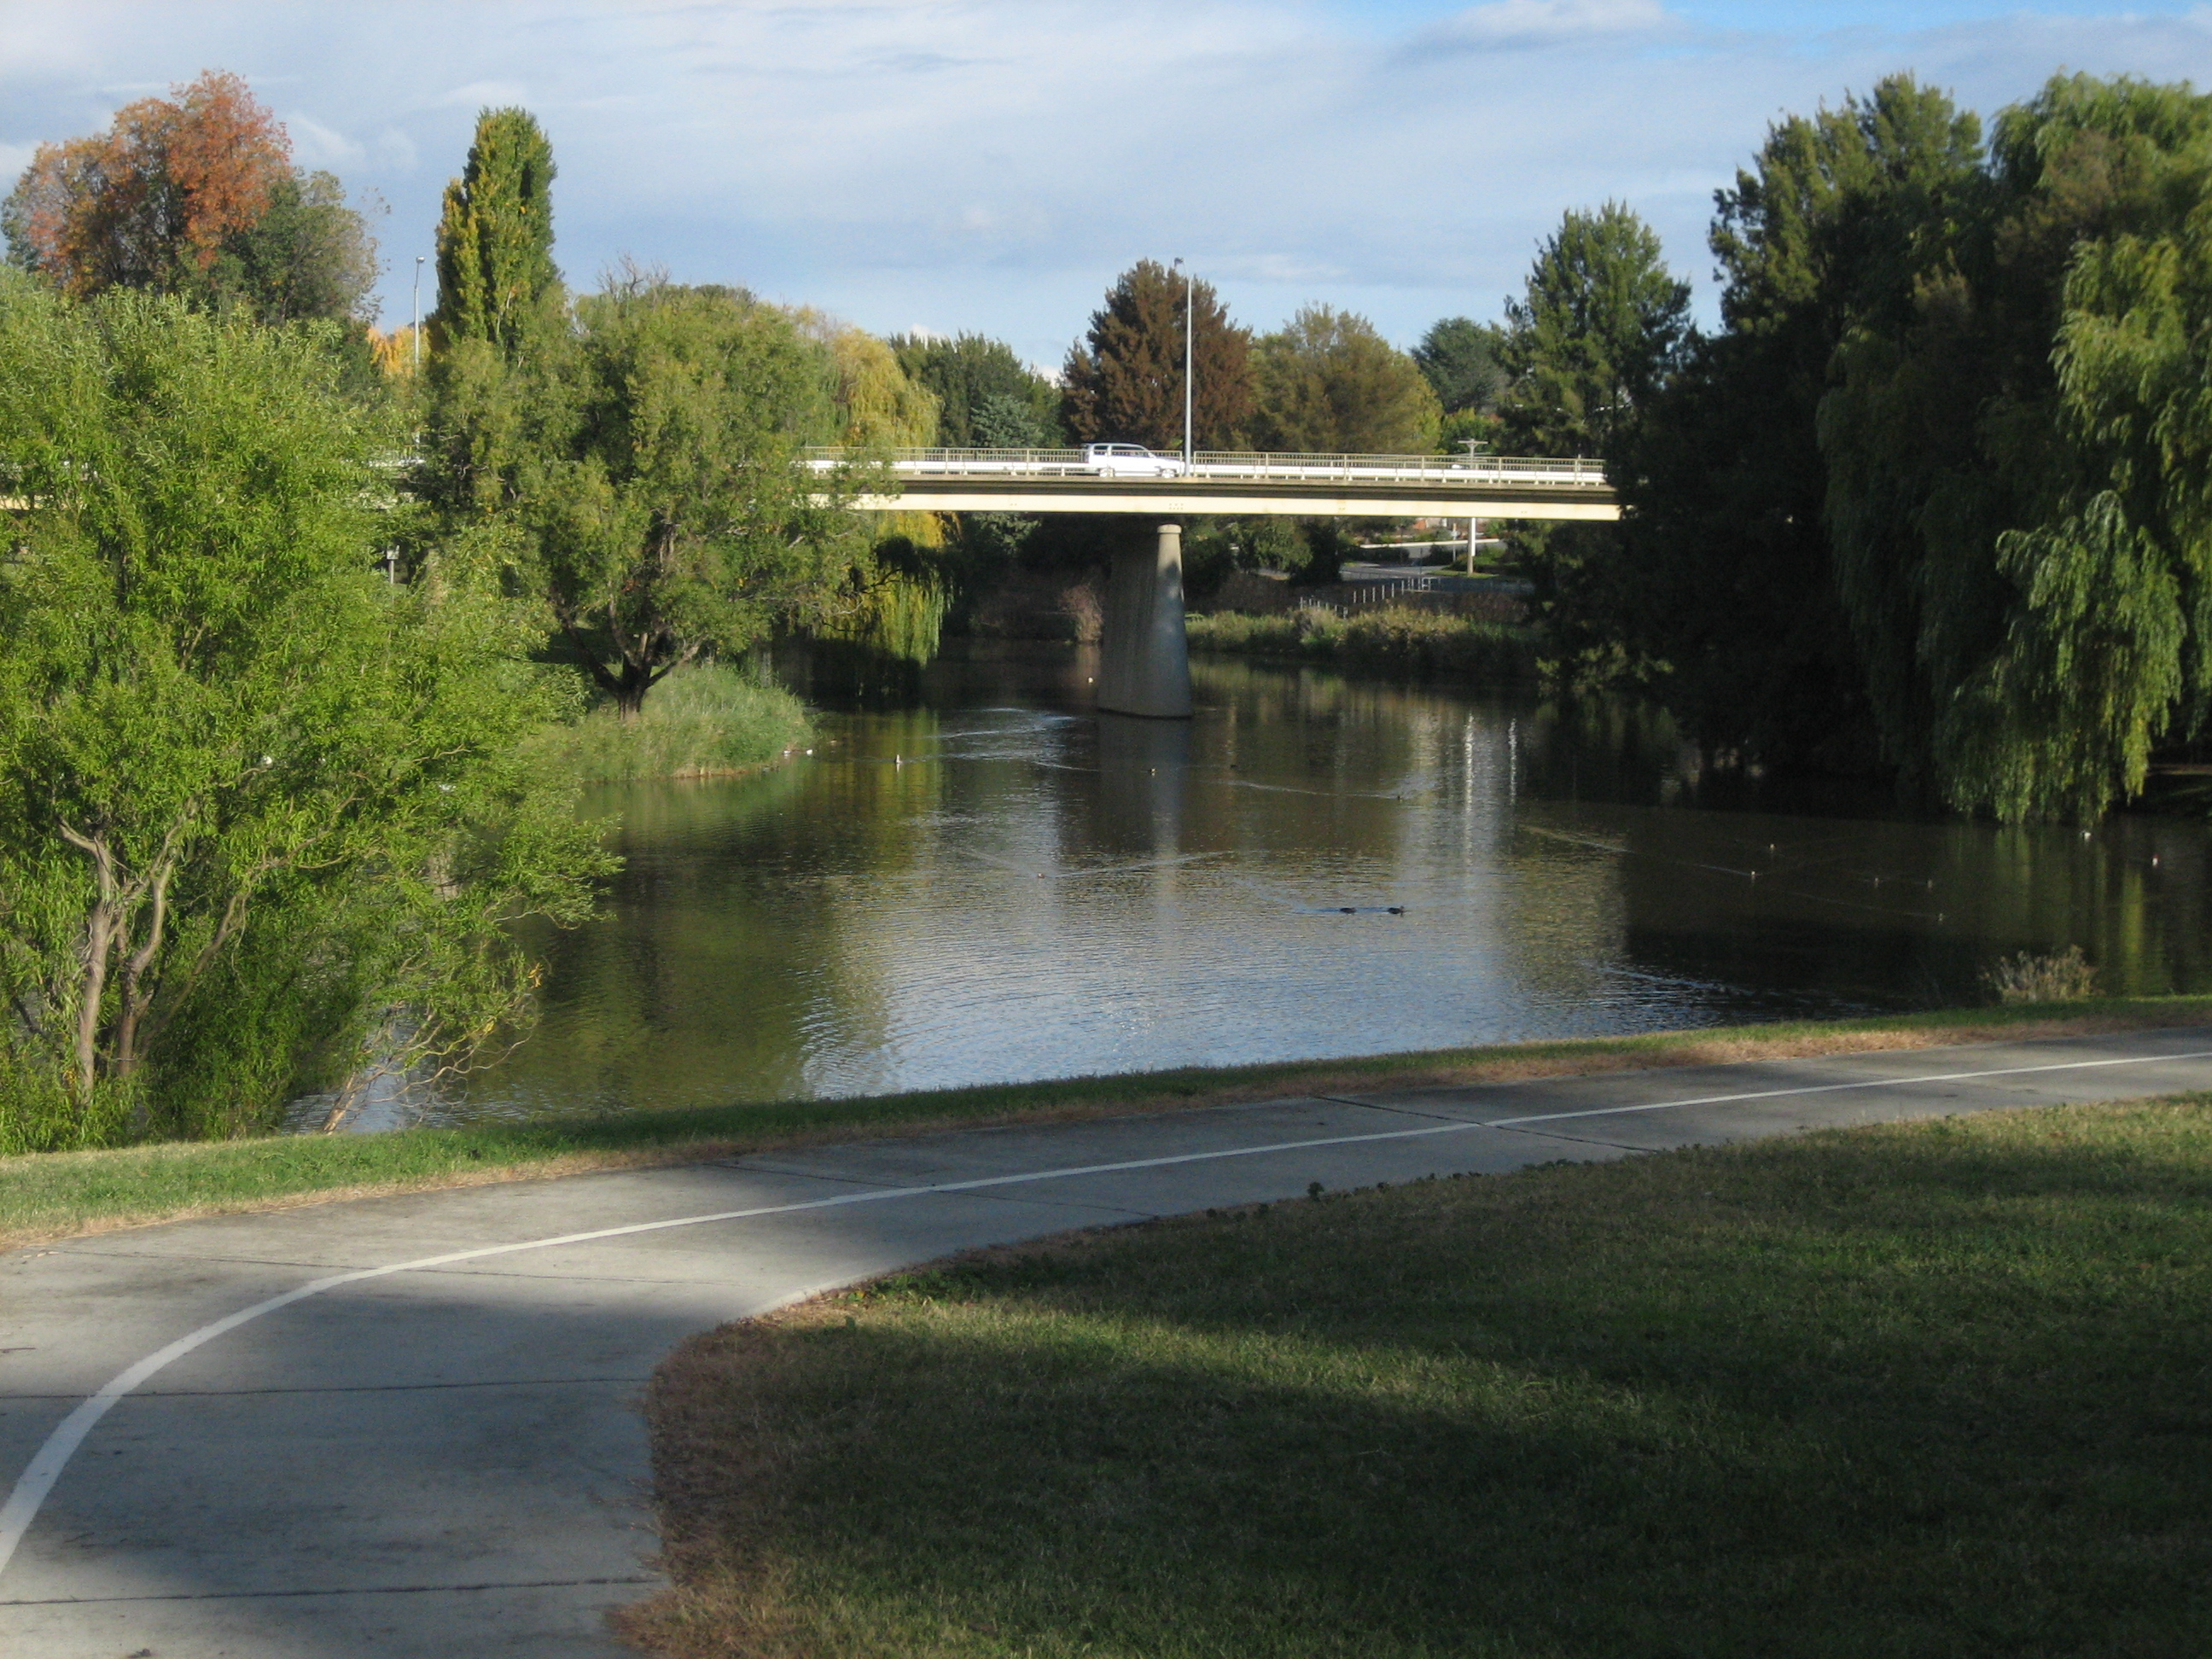 queanbeyan river - photo#8